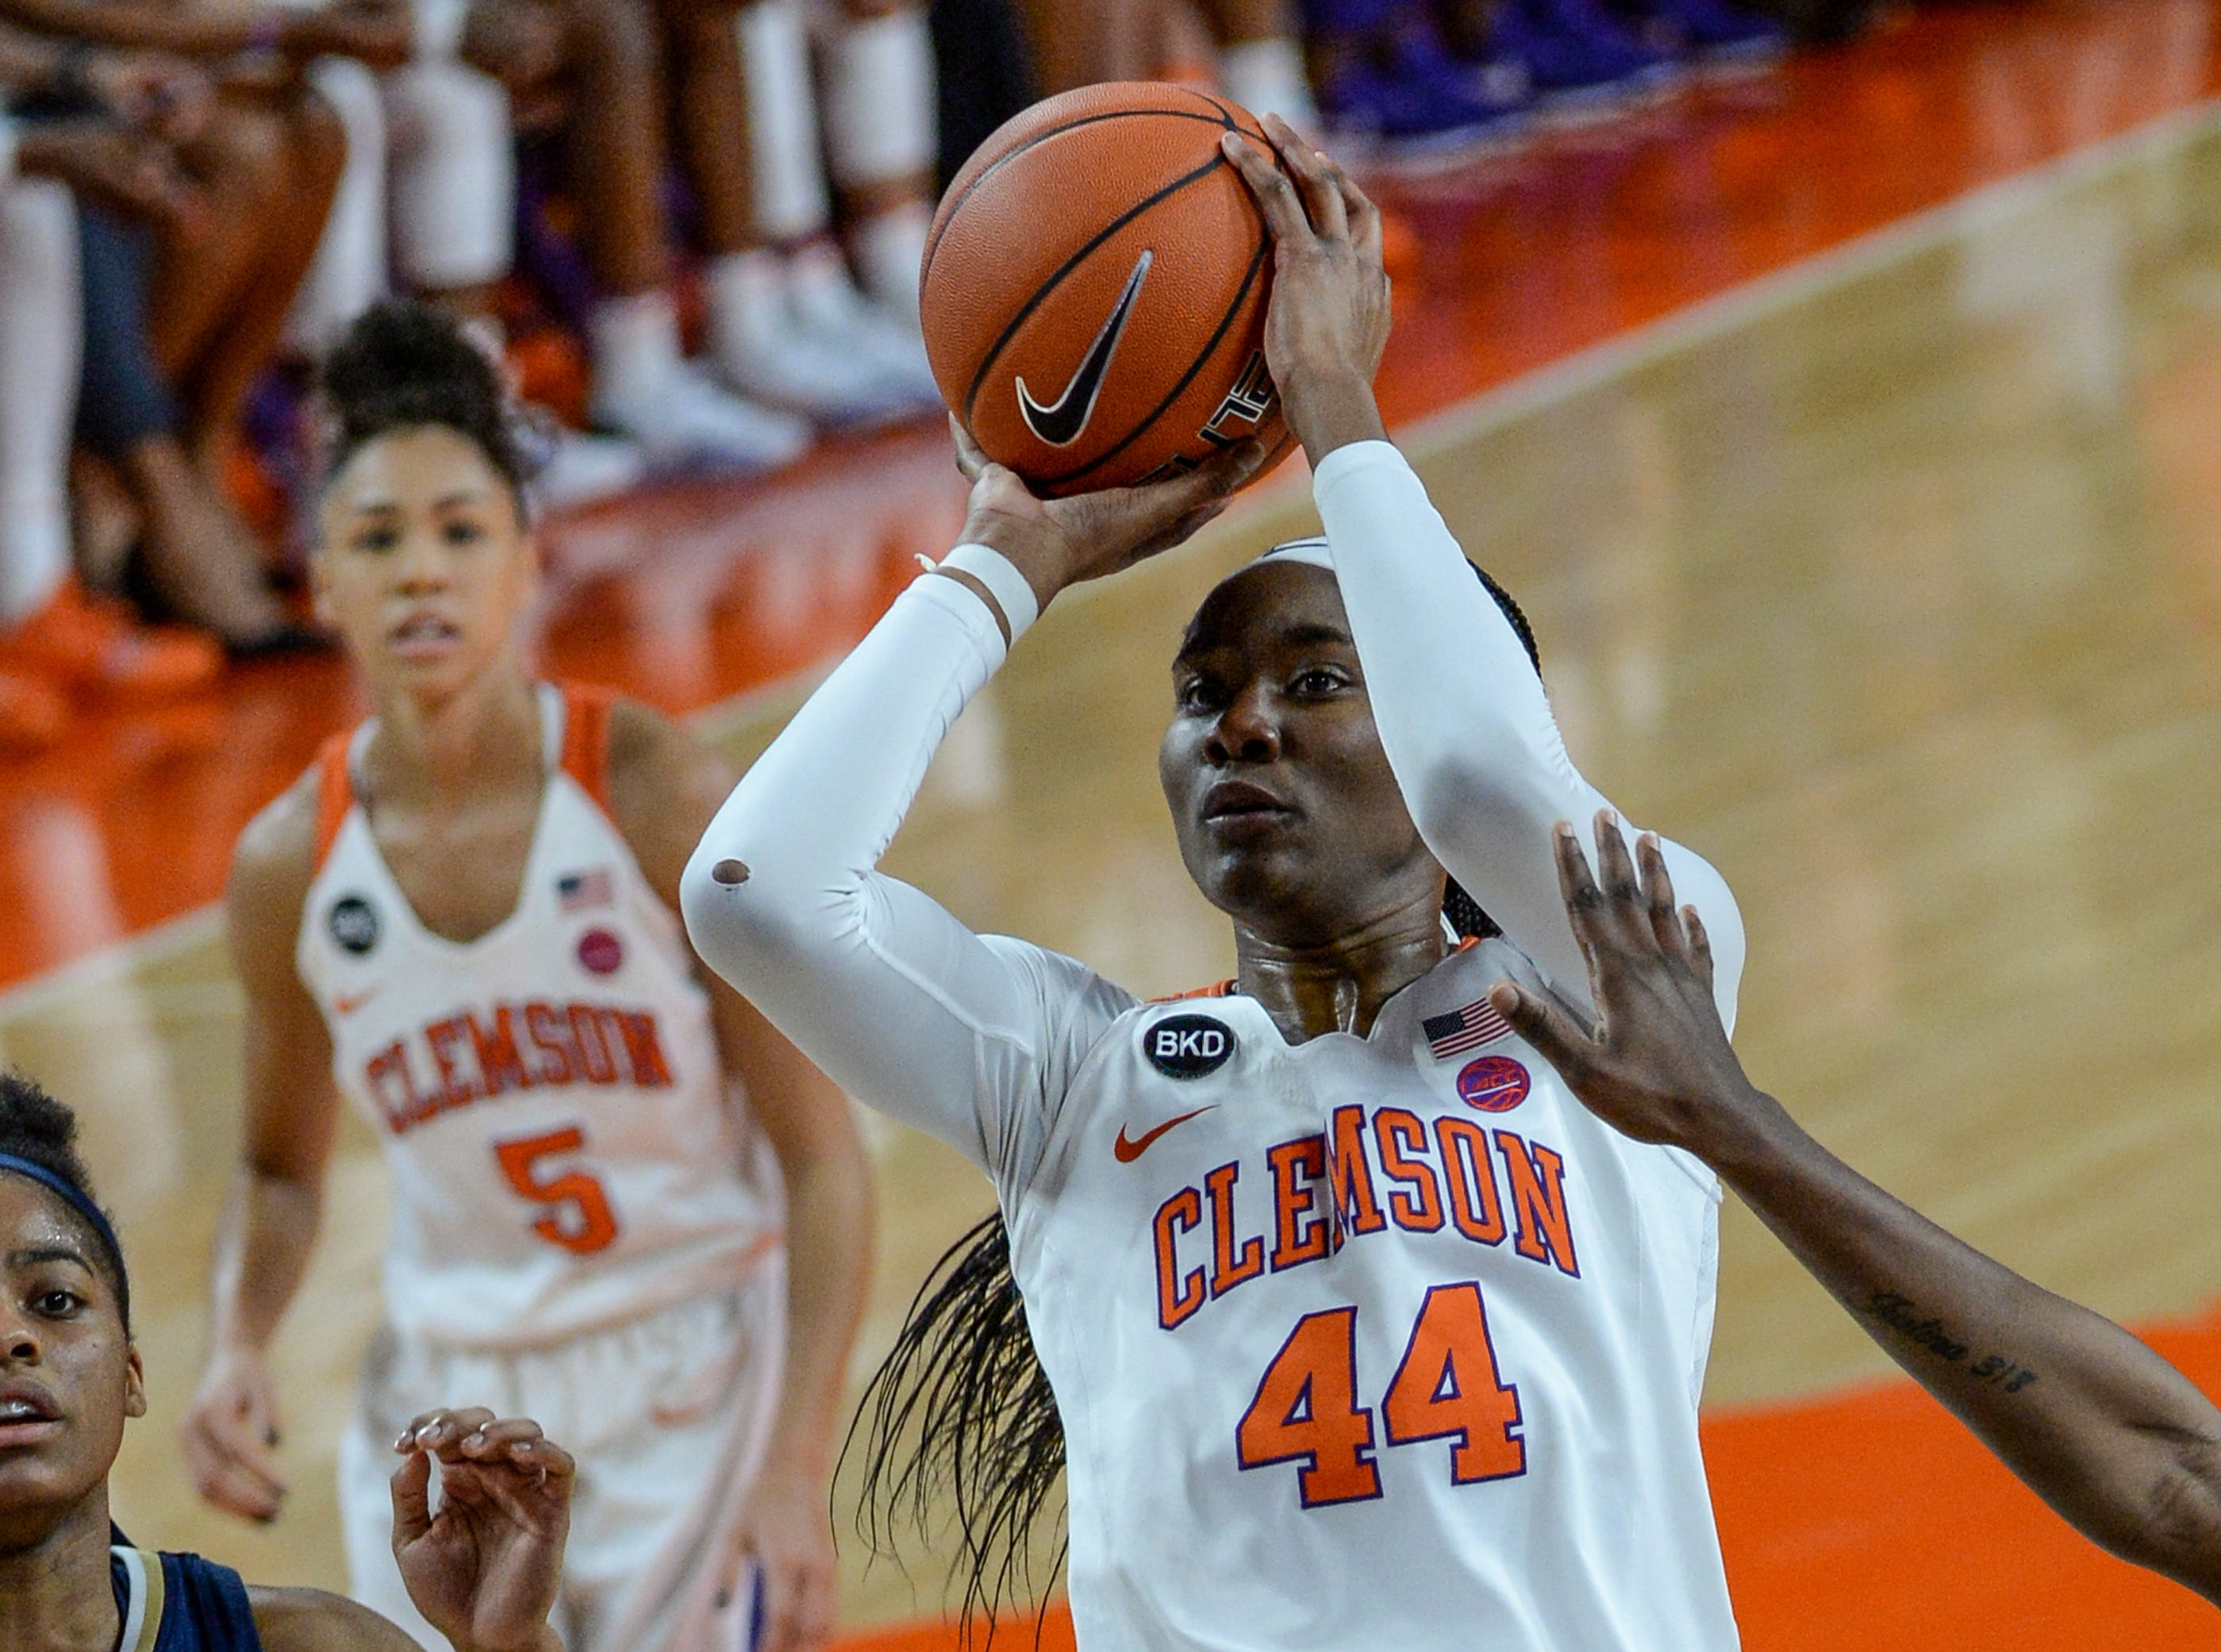 Clemson center Kobi Thornton(44) shoots near Georgia Tech guard Kierra Fletcher(41) during the first quarter at Littlejohn Coliseum in Clemson Thursday, January 17, 2019.